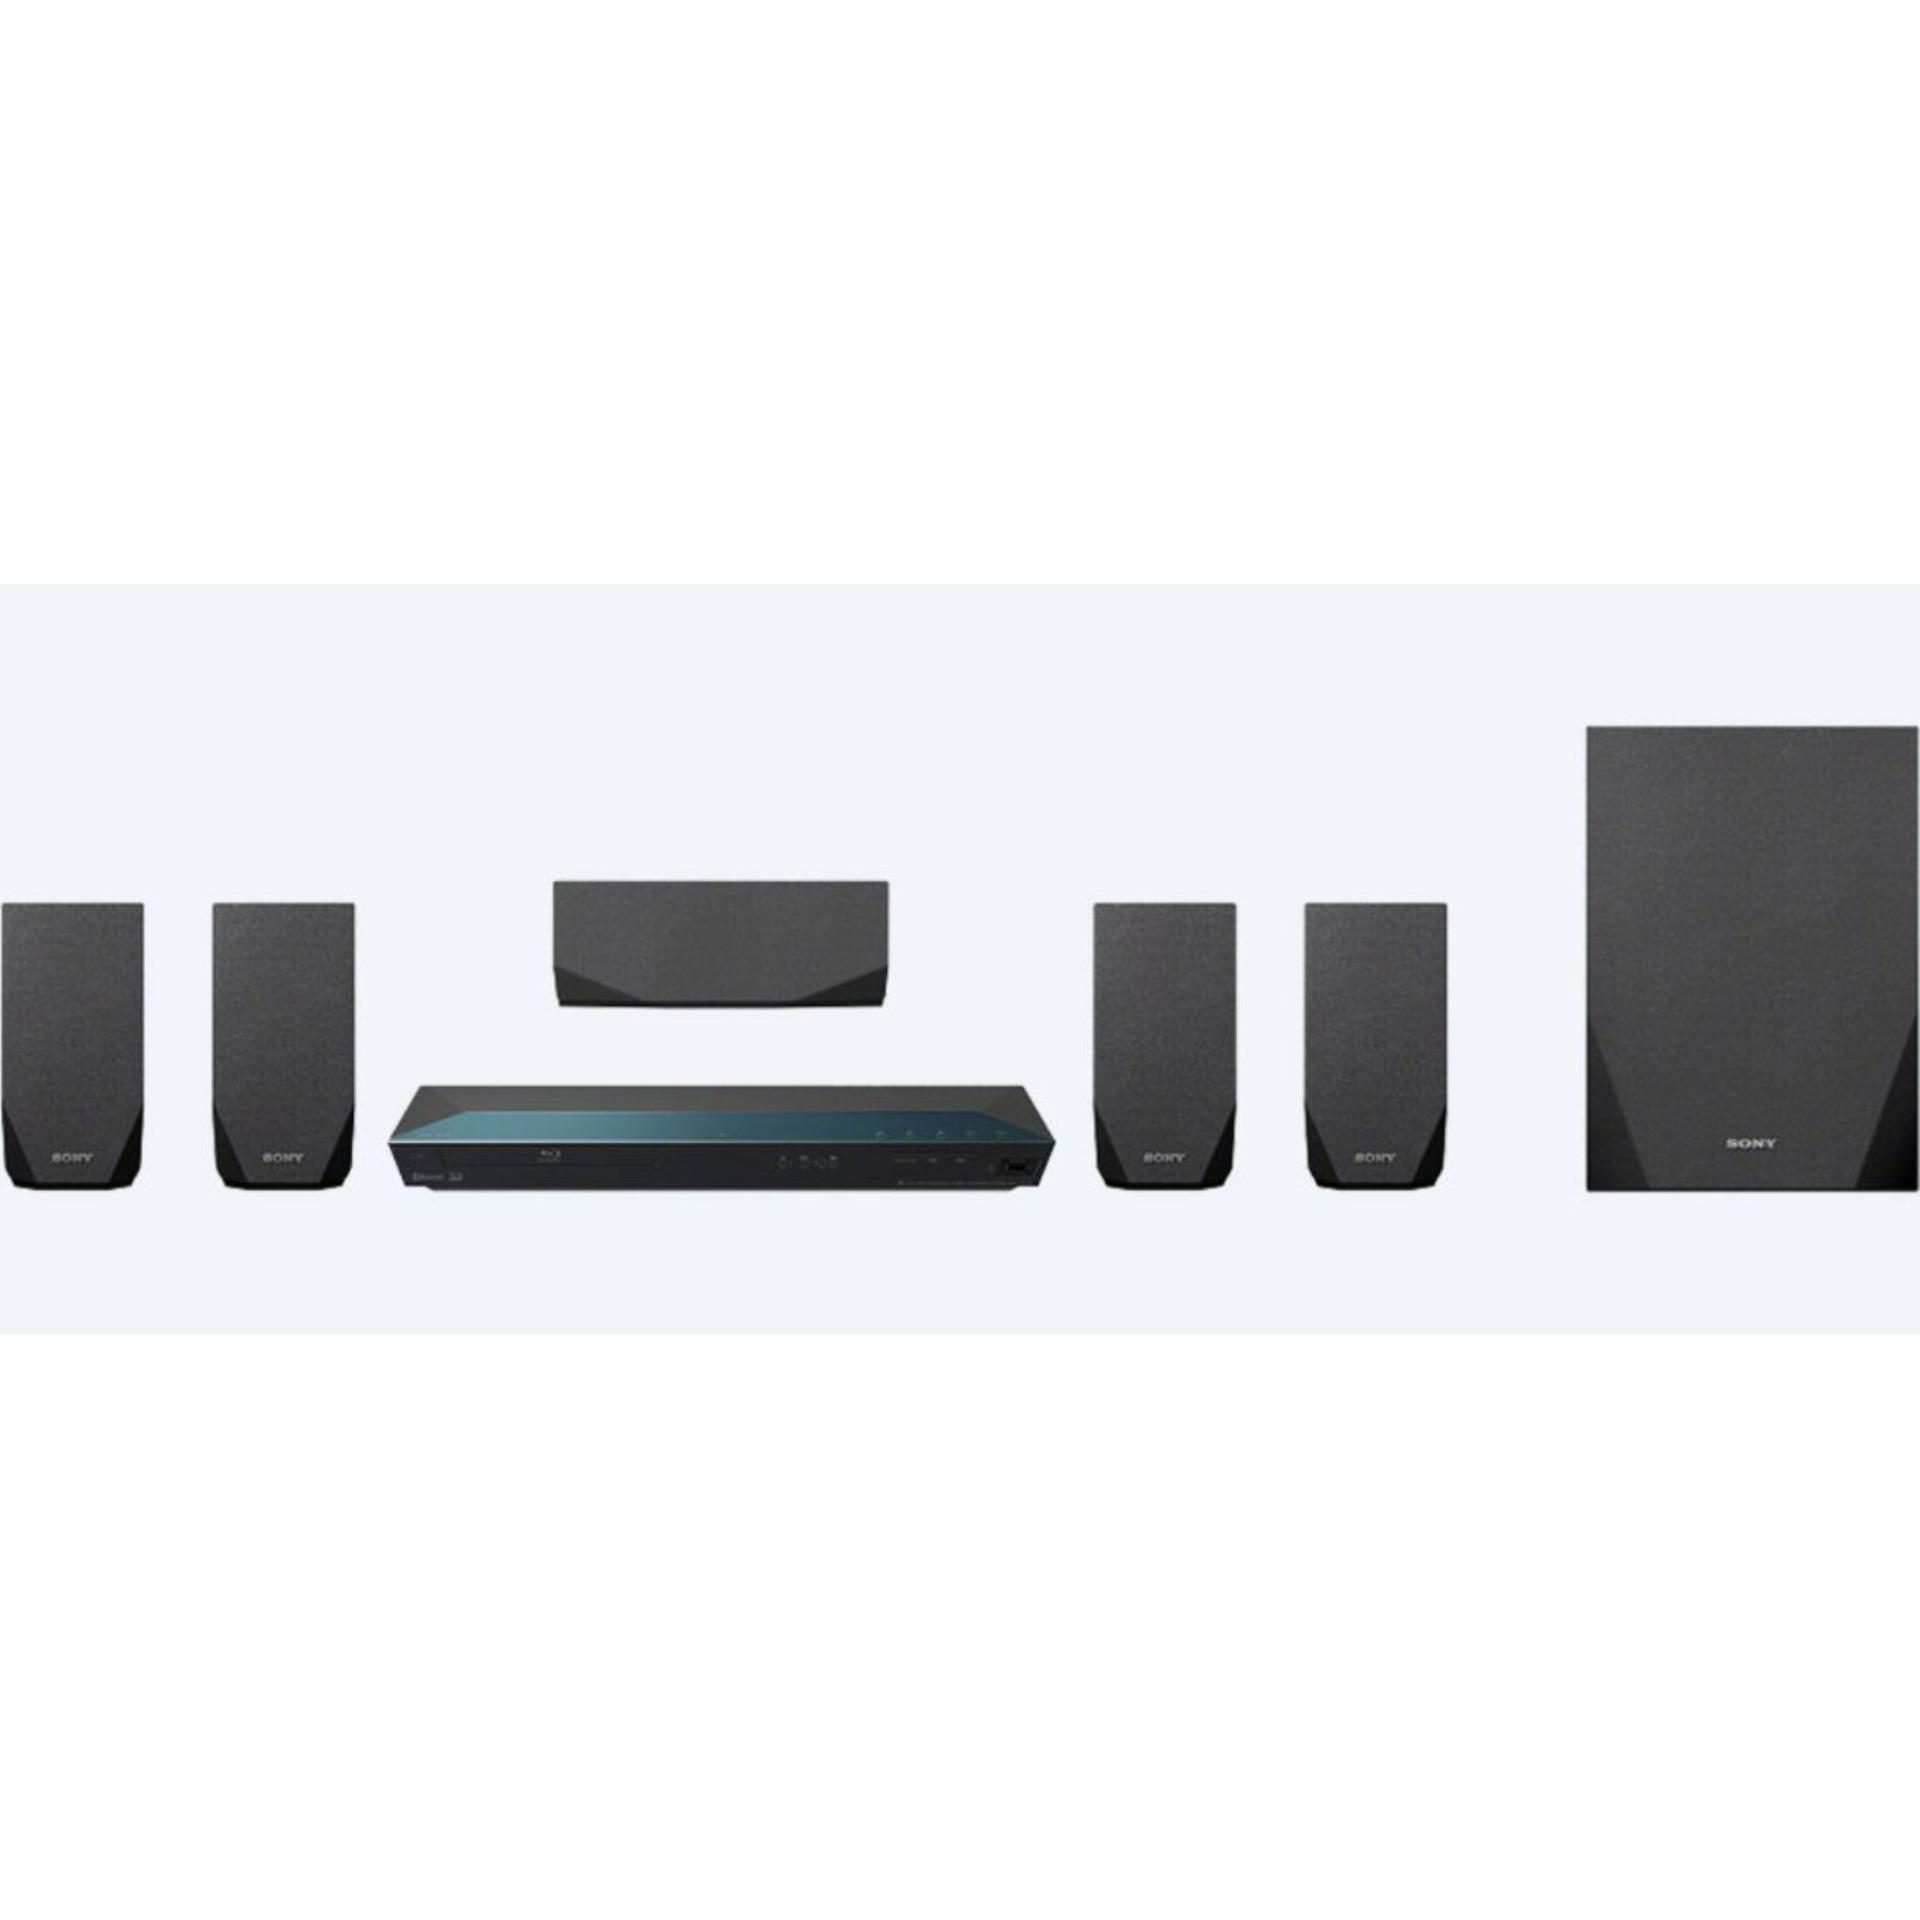 Toko Sony Home Theatre Sound Bar Bdv E2100 Lengkap Indonesia